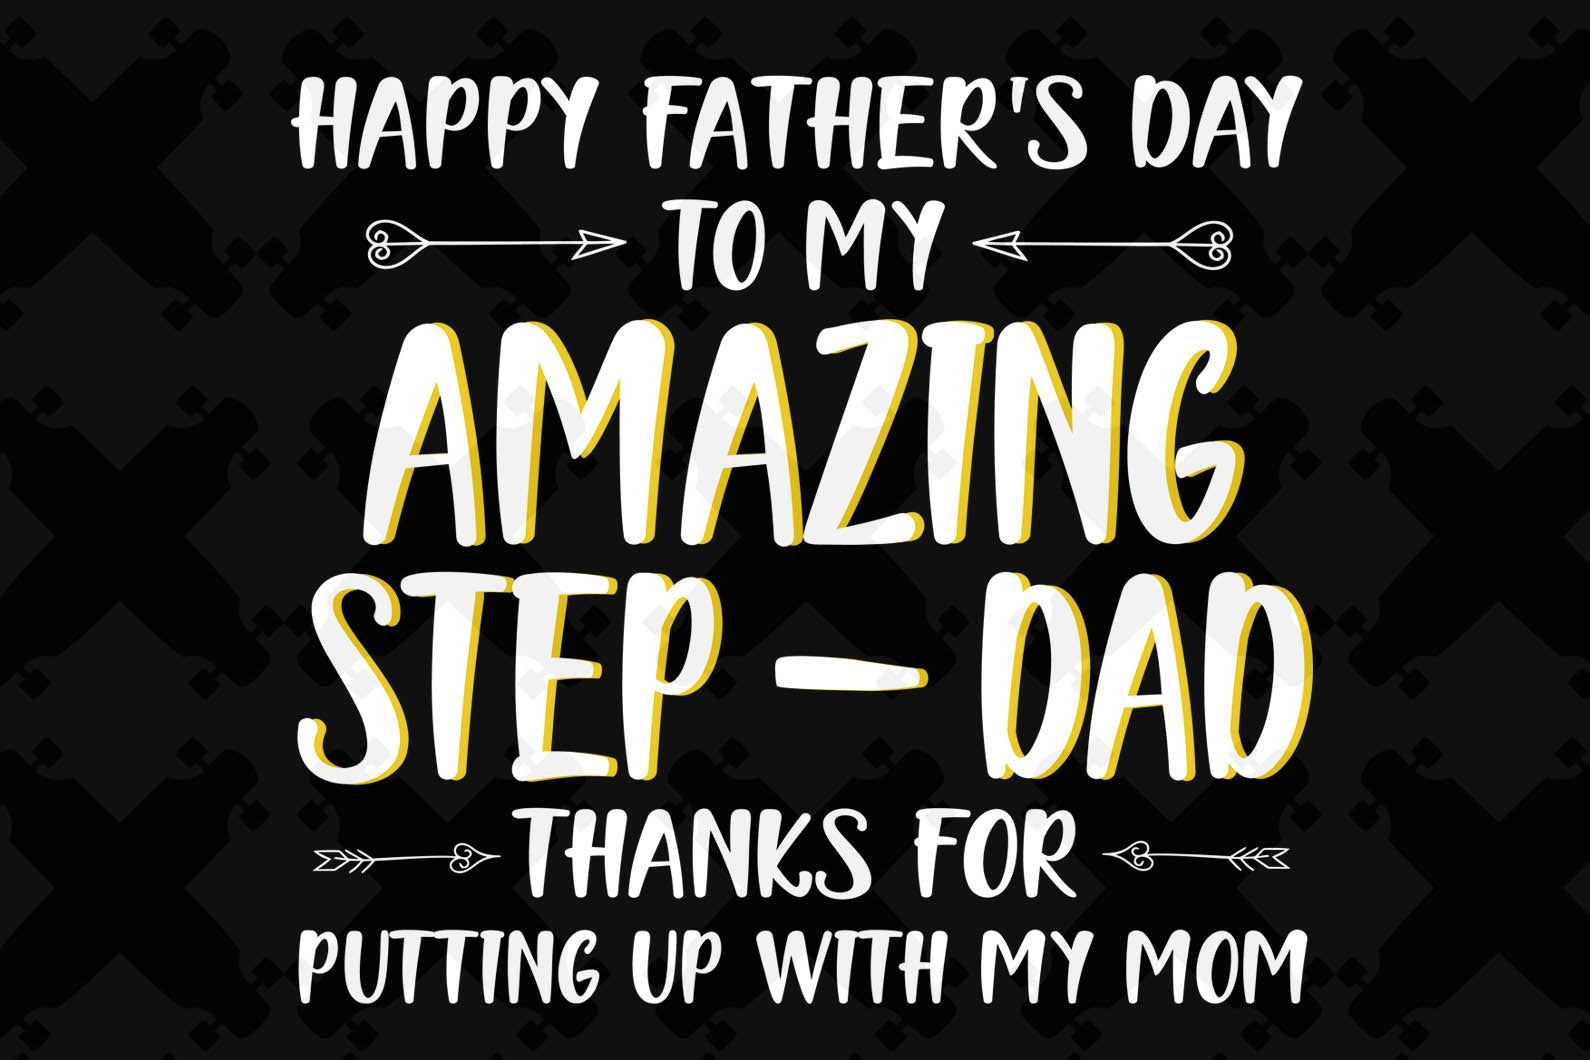 Happy Father's day to my amazing step dad,father's day gift,happy fathers day,love father,father gift,fathers day shirt, gift for father,happy fathers day gift,daddy svg, papa svg, love daddy, best dad ever, best dad, best gift,amazing step dad